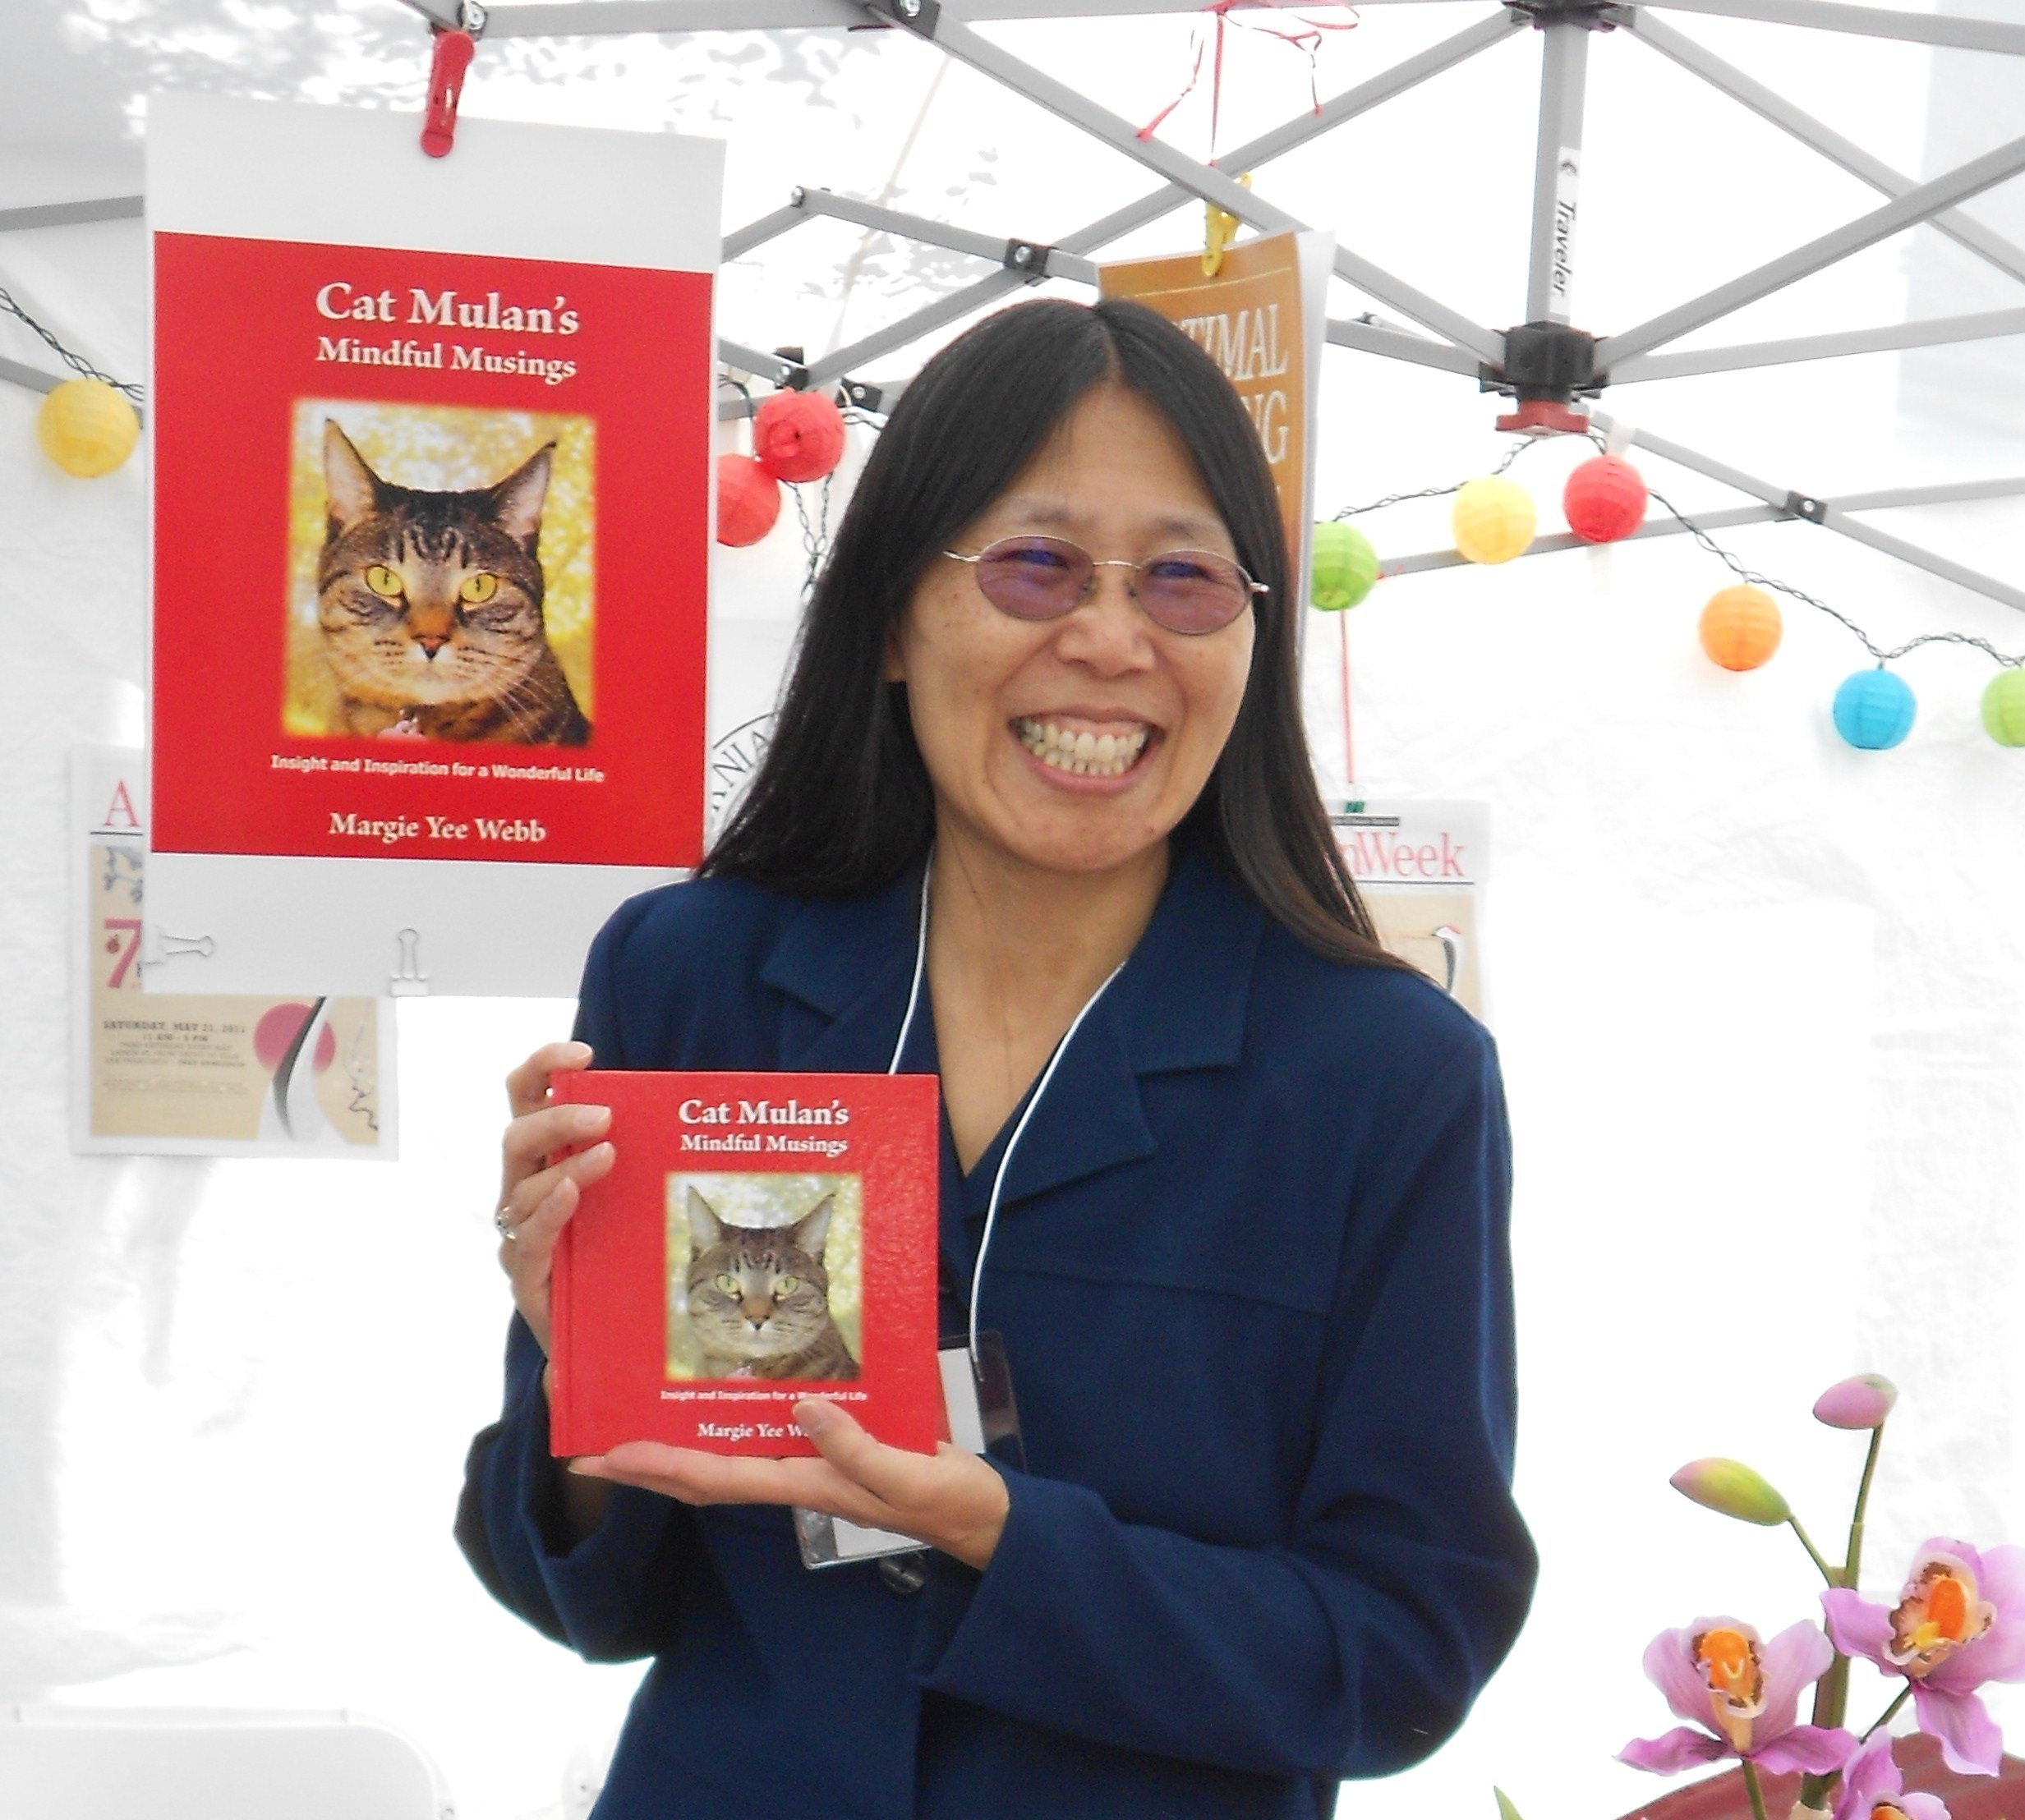 Margie Yee Webb, author-photographer of Cat Mulan's Mindful Musings